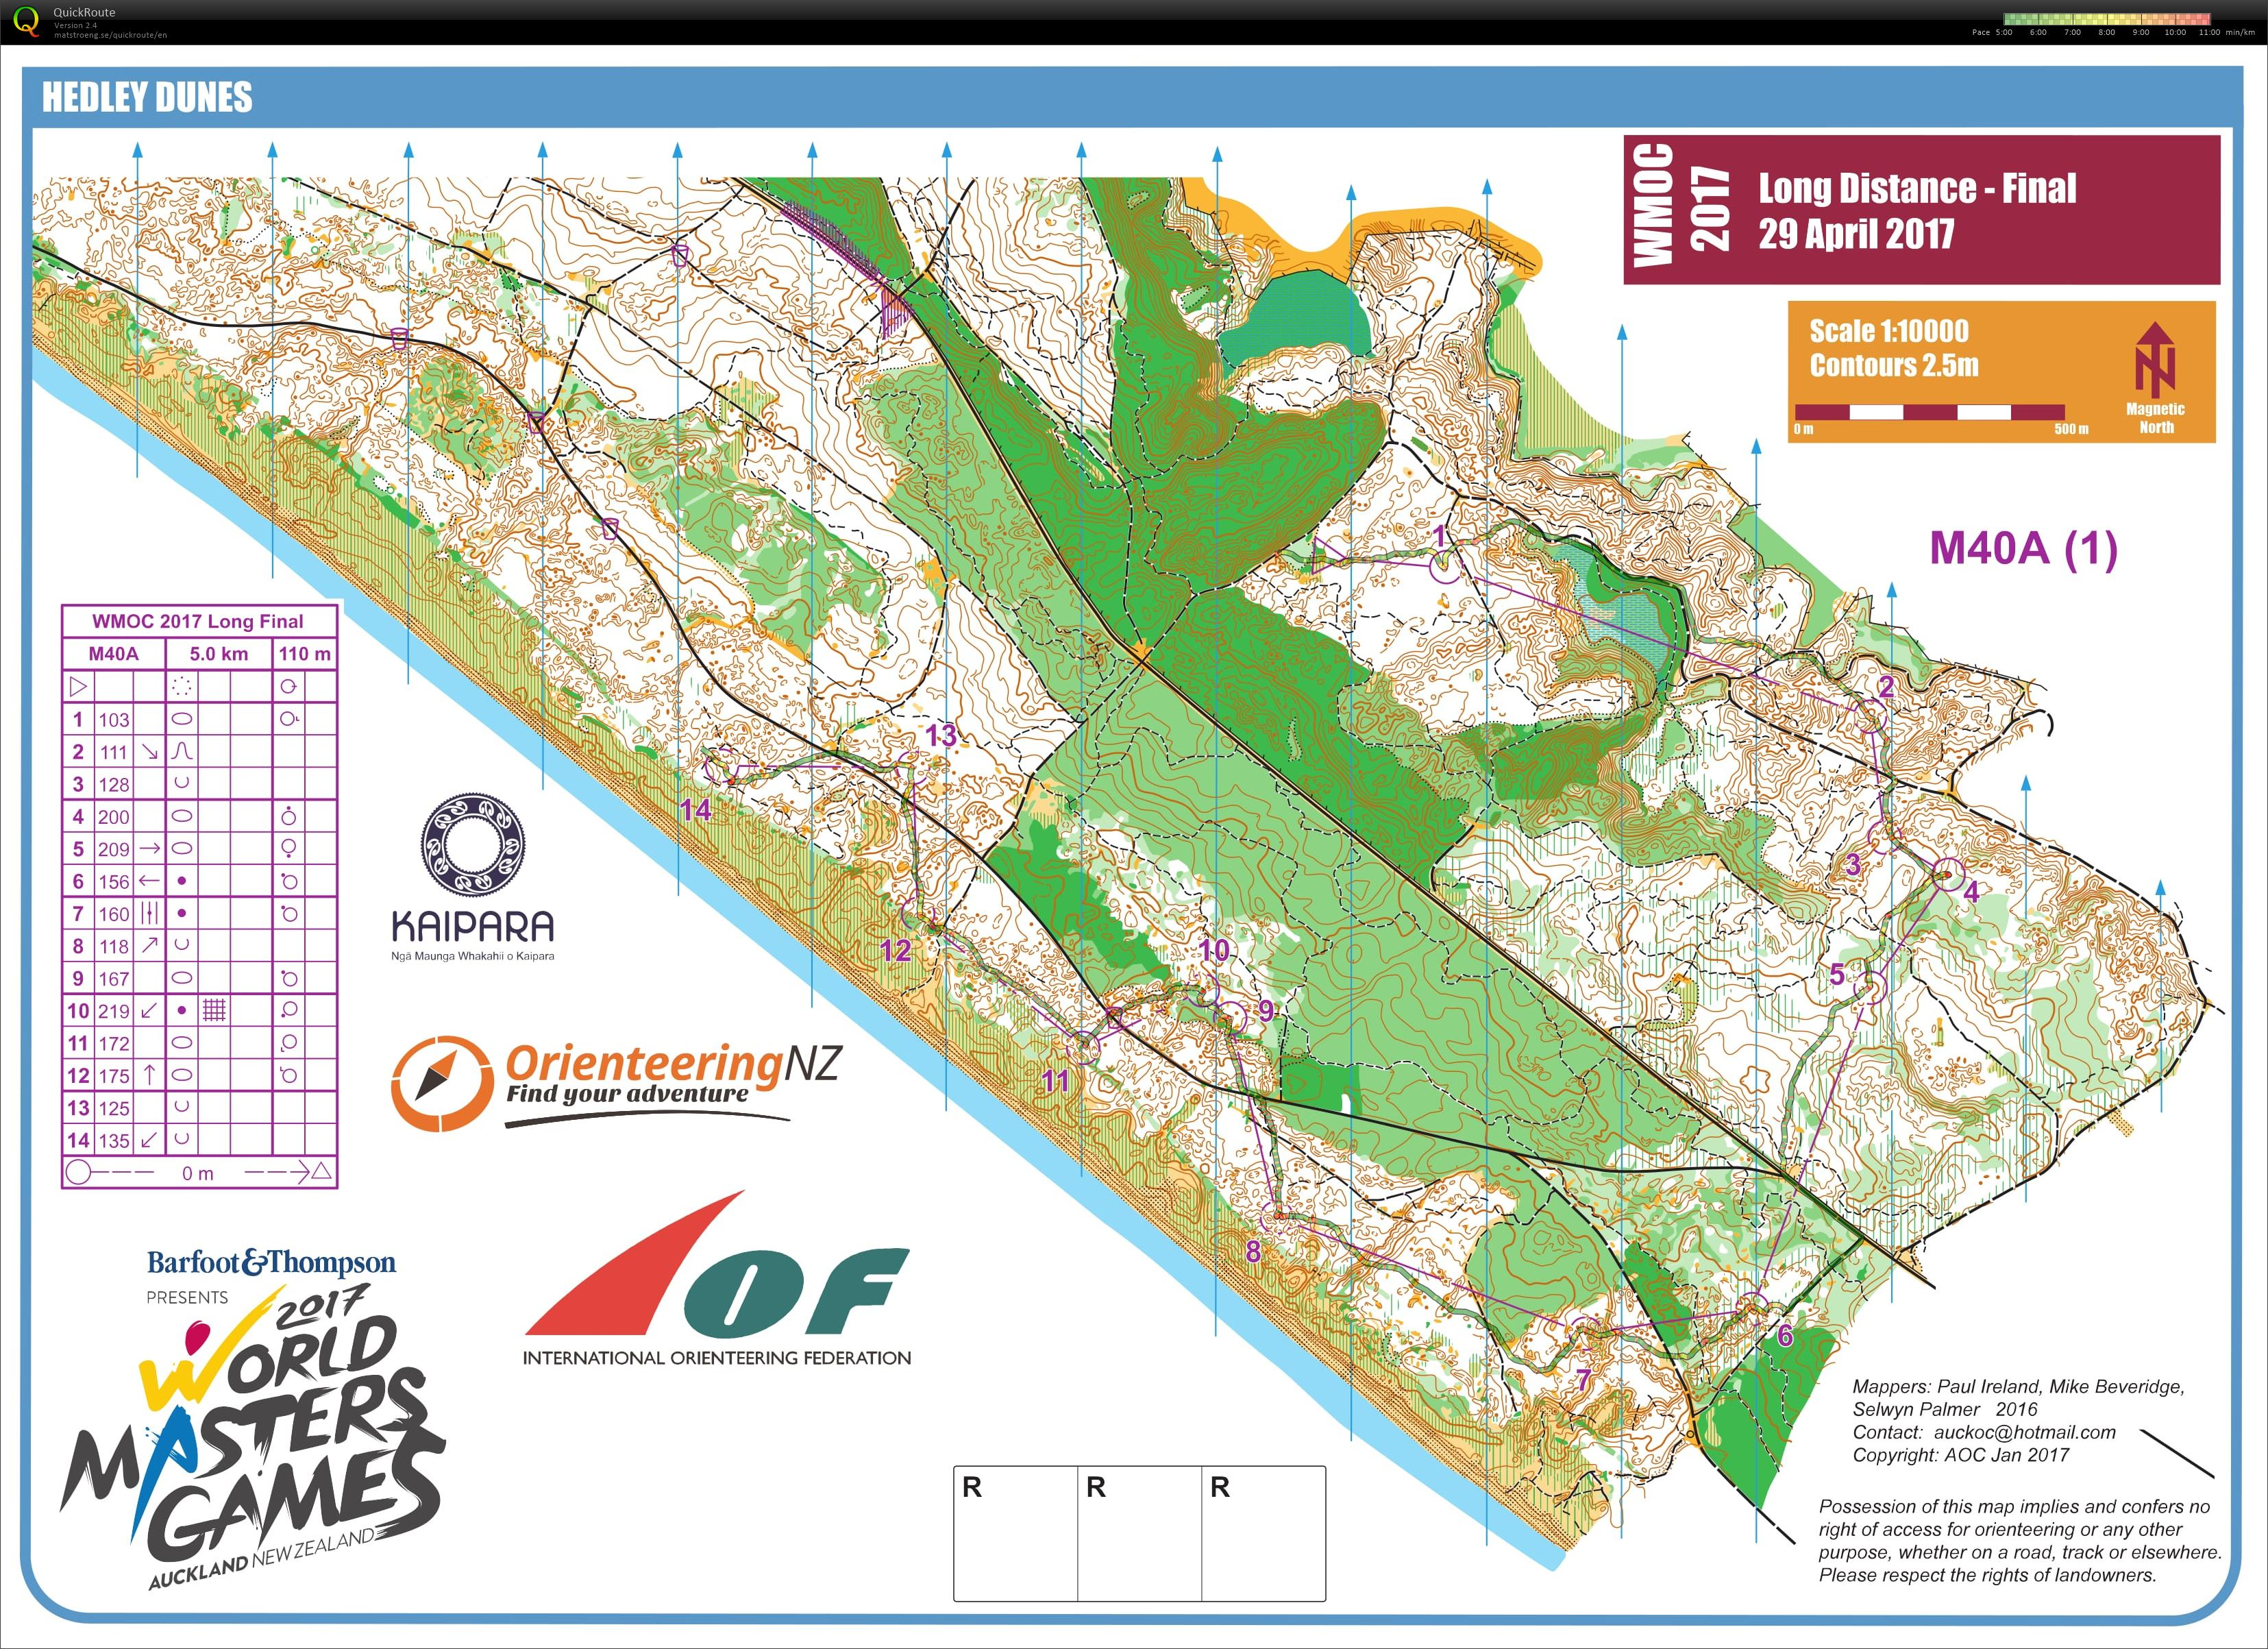 2017 World Masters Orienteering Championships - Long Final. Map 1 of 2 (29/04/2017)